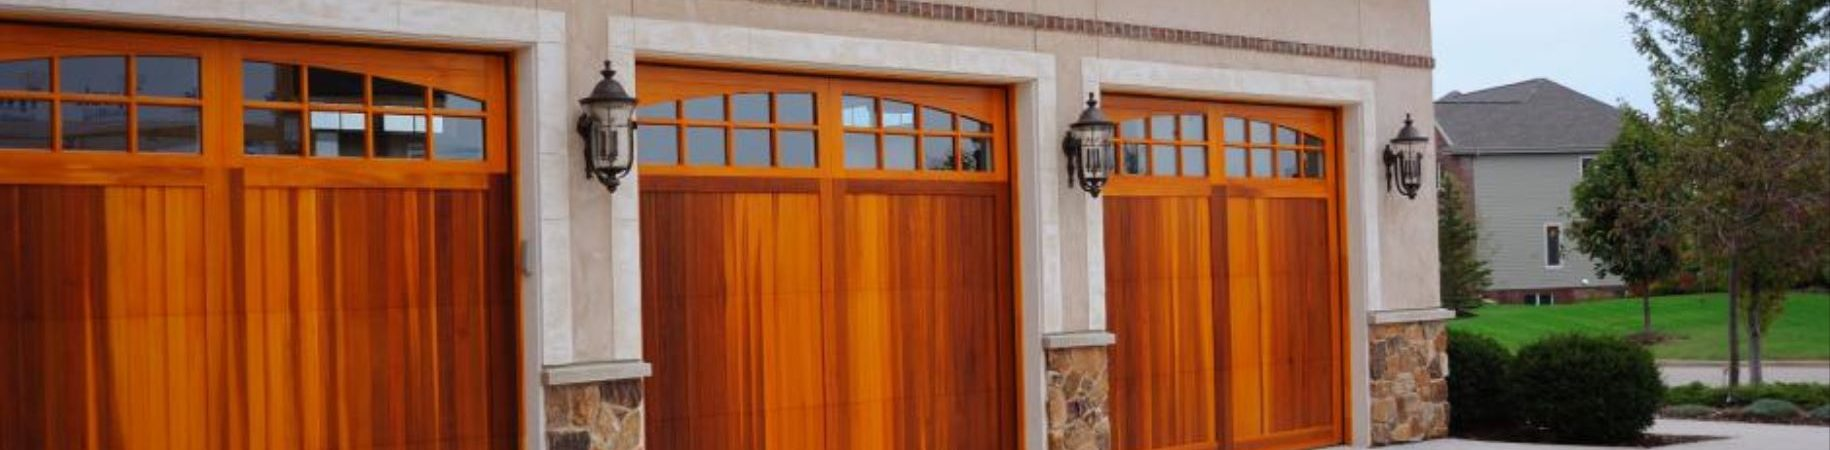 garage door repair company chicago : door companies - pezcame.com